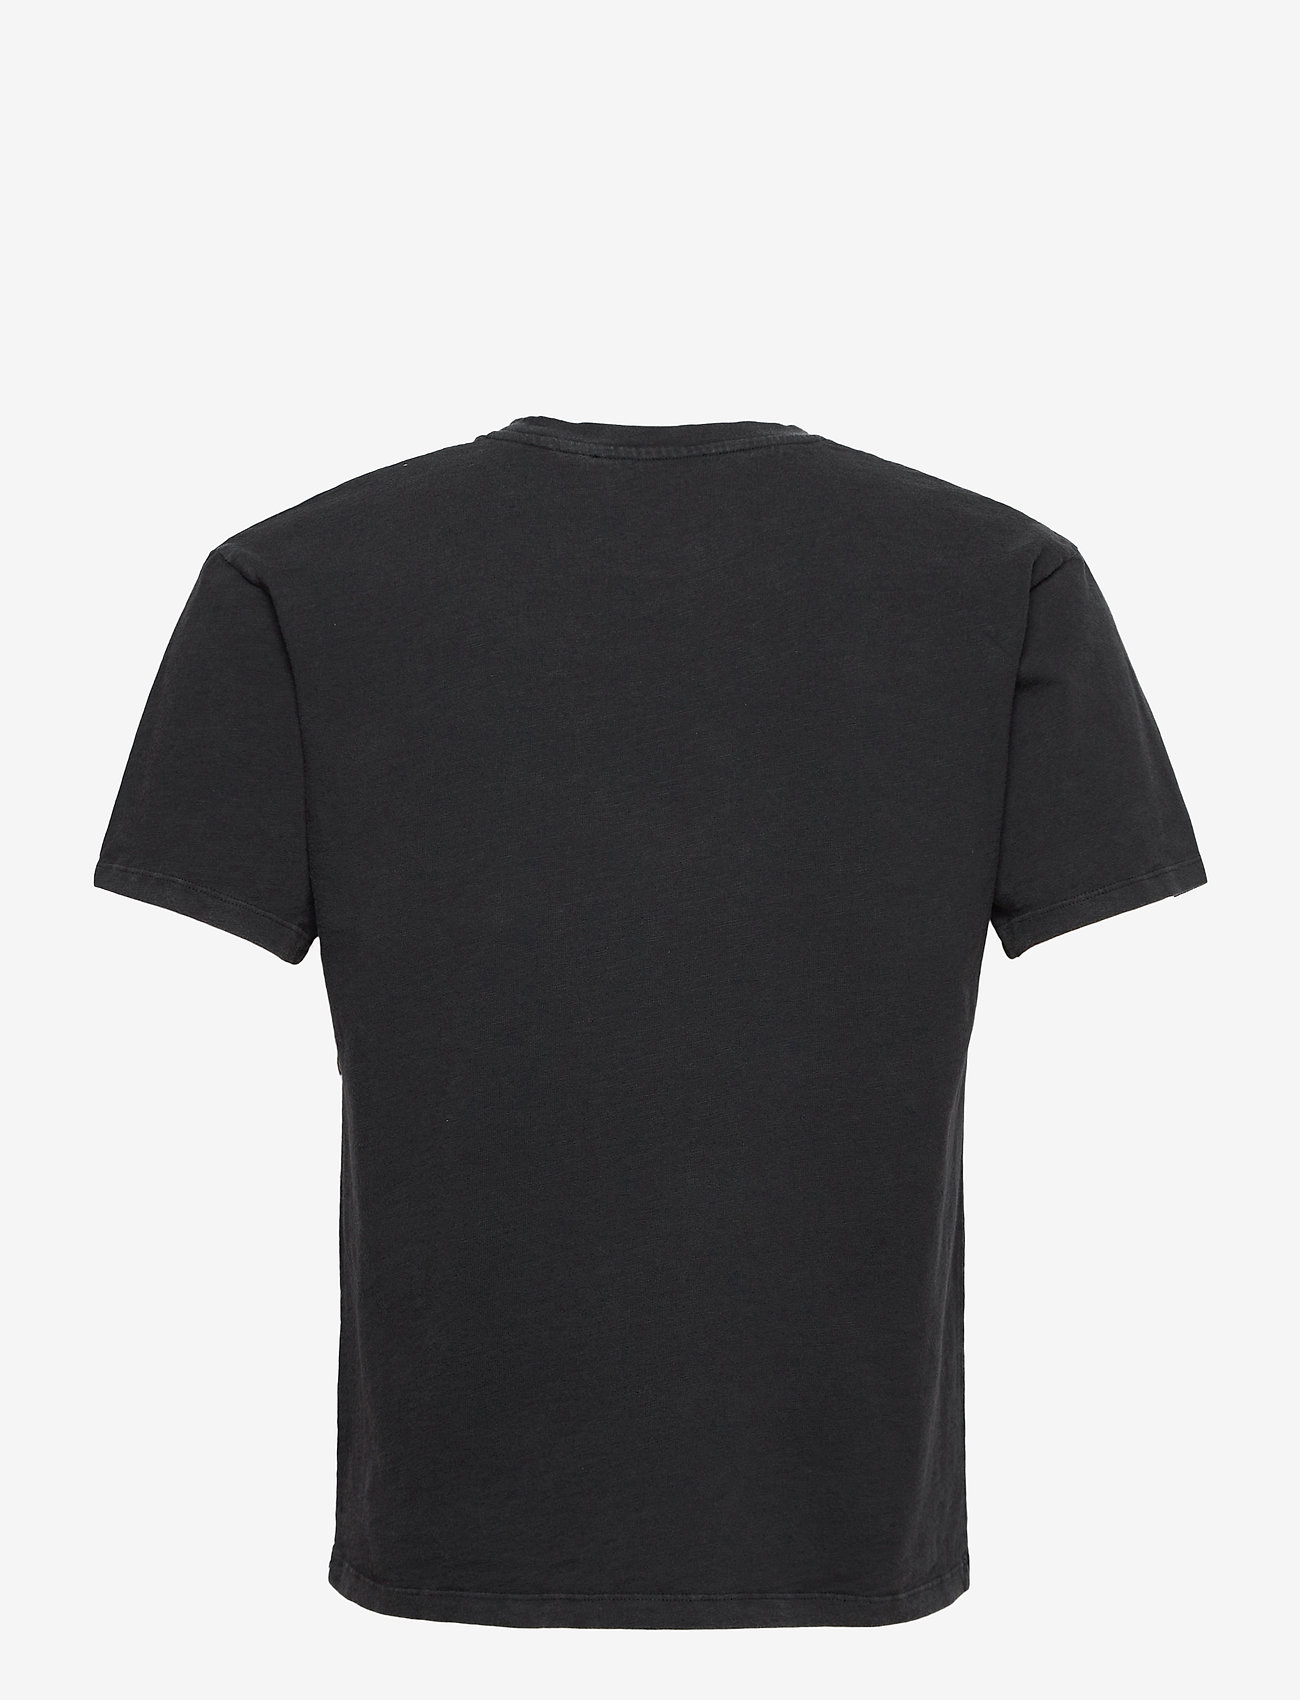 The Kooples - T-SHIRT - t-shirts à manches courtes - black washed - 1